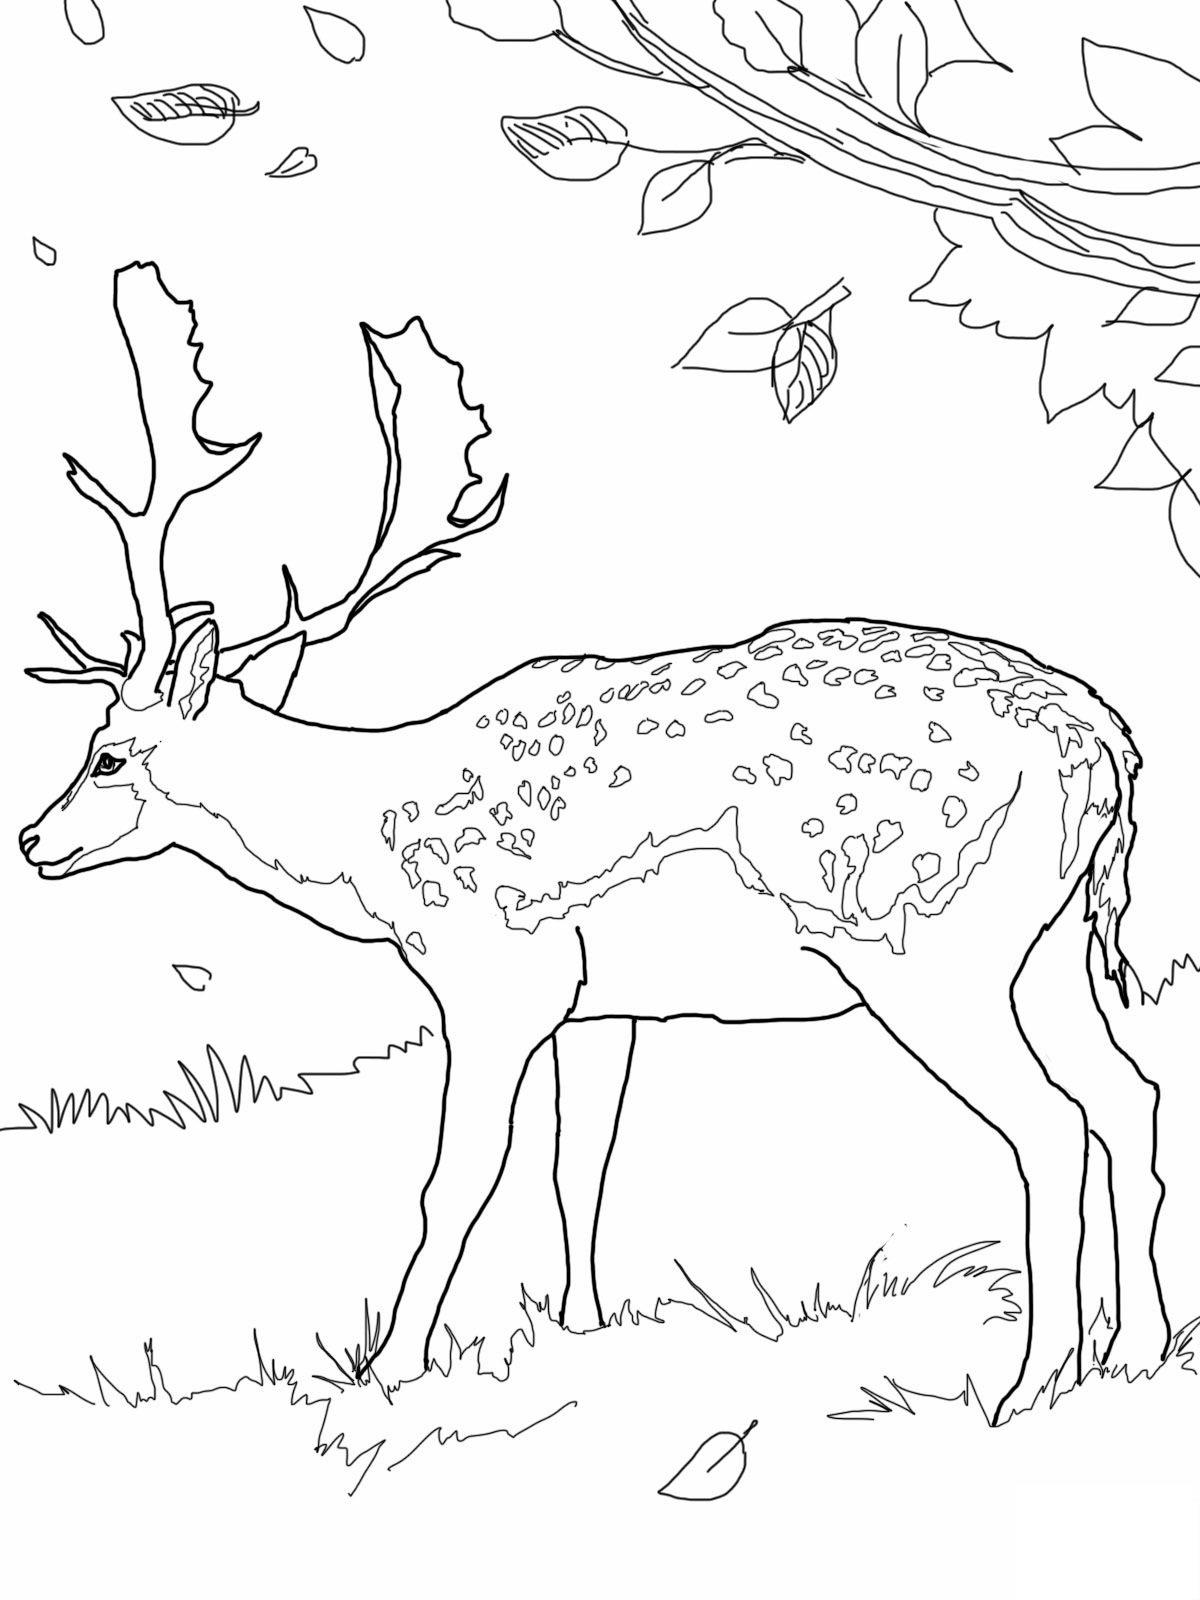 Deer Head Colring Pages Coloring Pages Deer Printable Coloring Pages